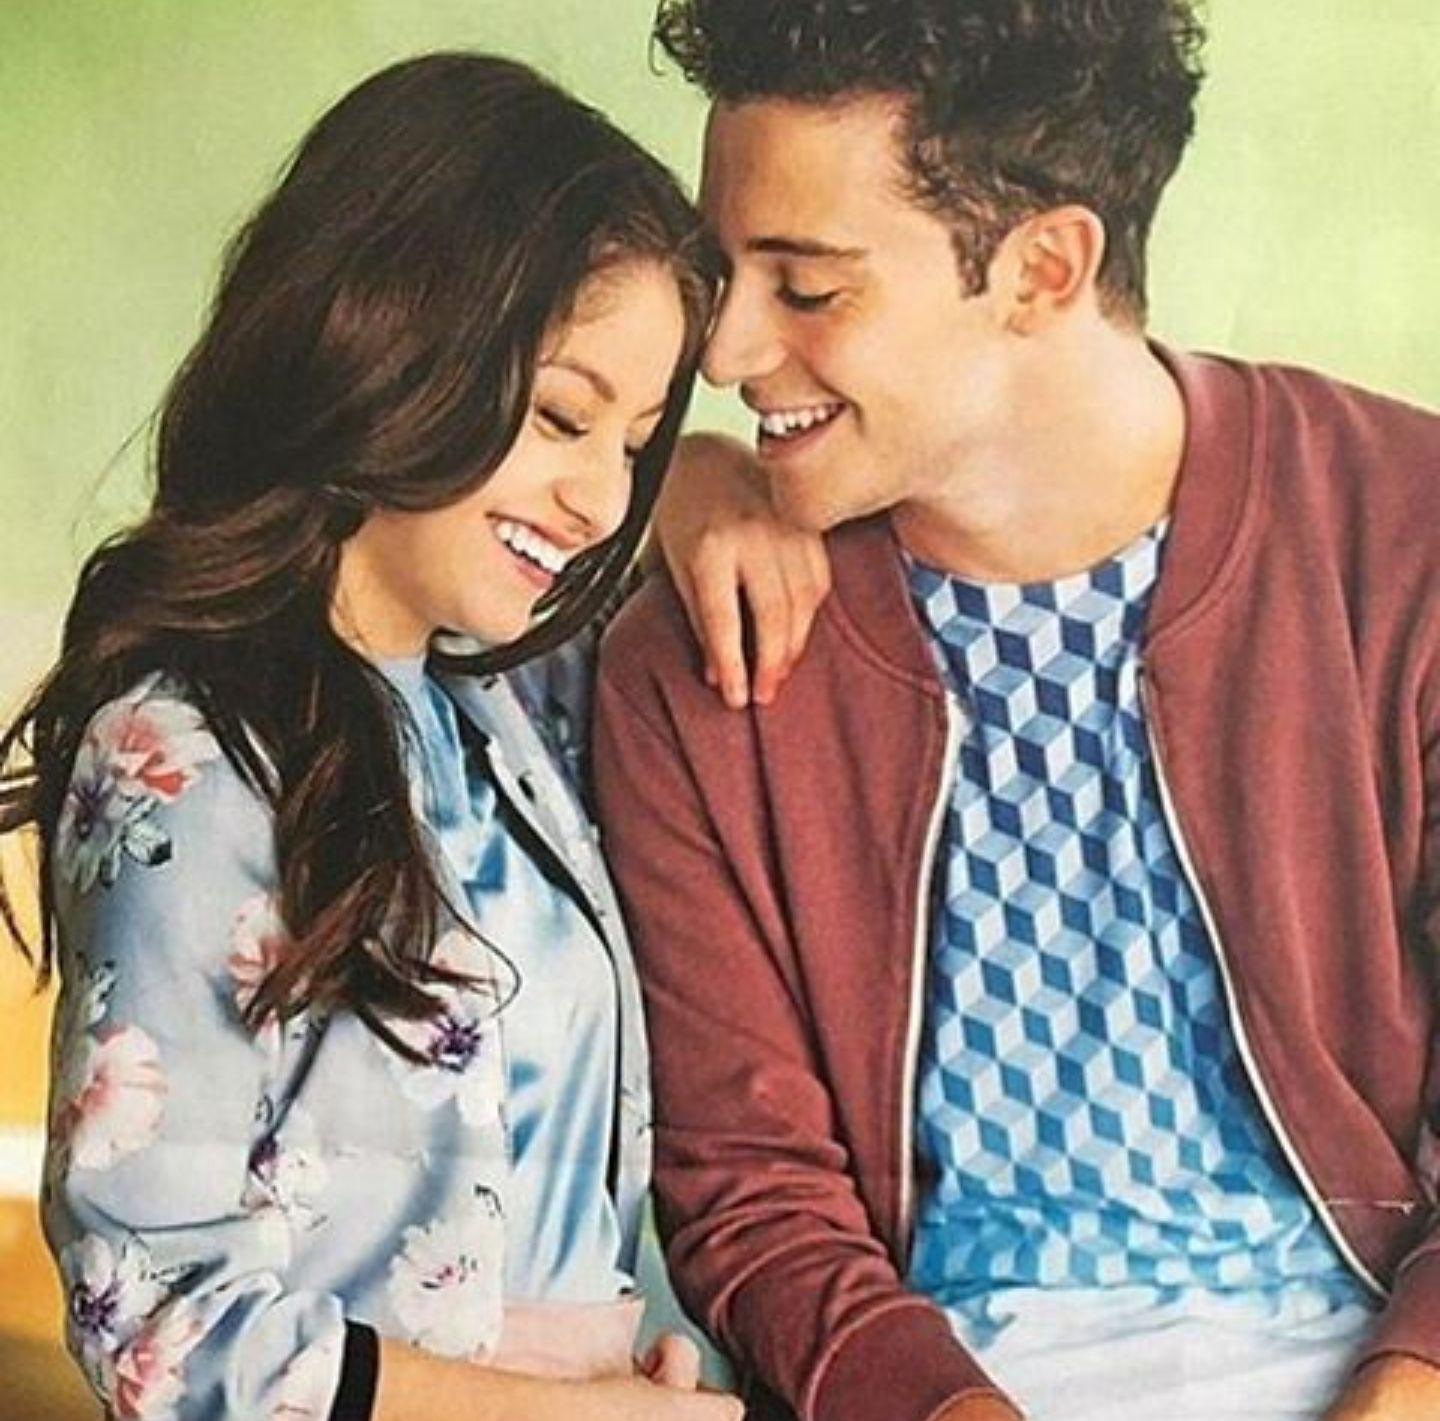 Result Of Luna E Matteo Soy Luna Che Cantano Insieme My Sweet Home